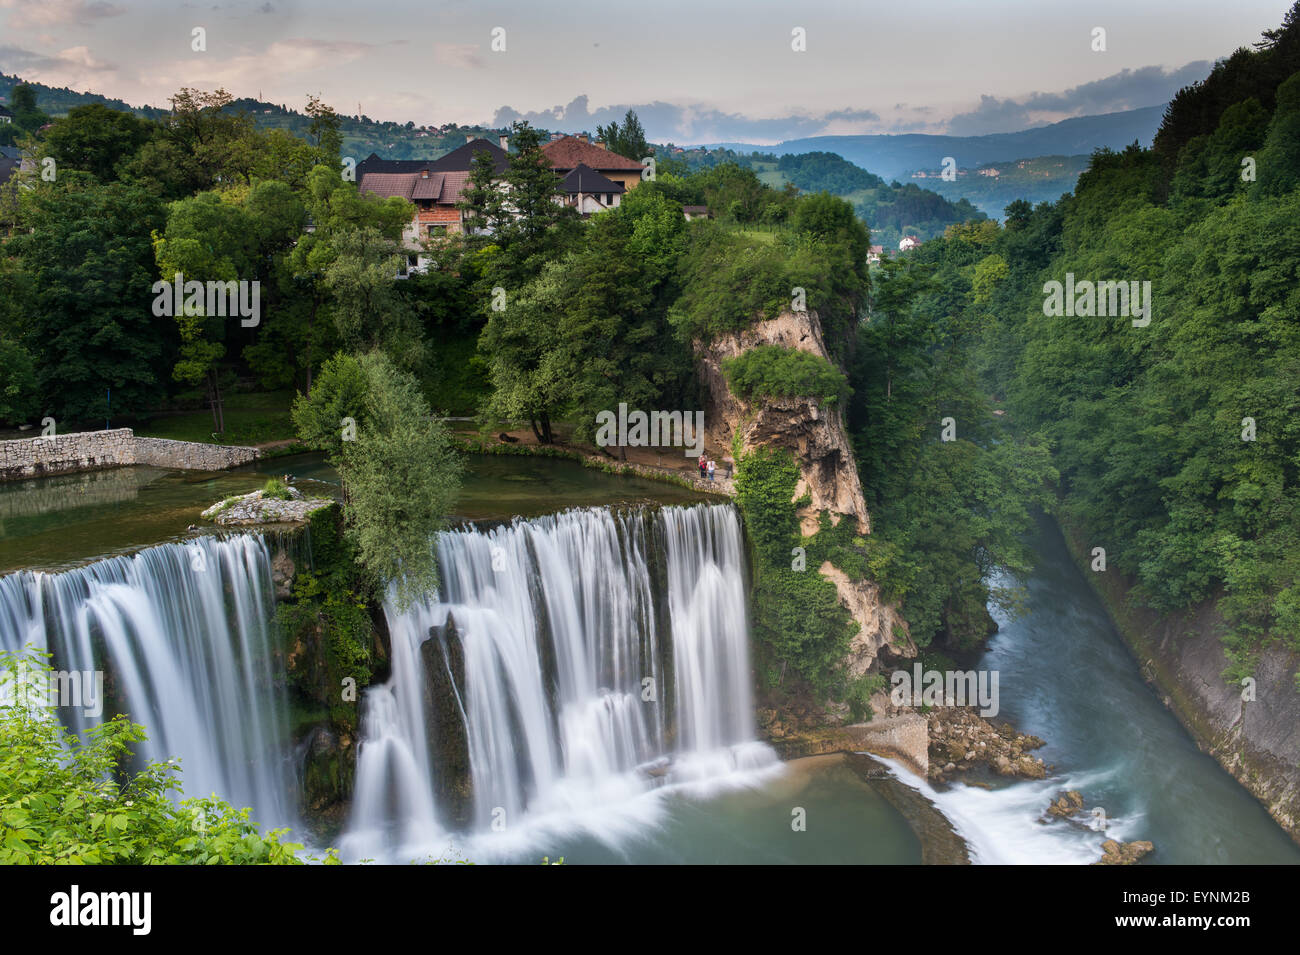 Jaice waterfall, Pliva river, Bosnia and Erzegovina - Stock Image